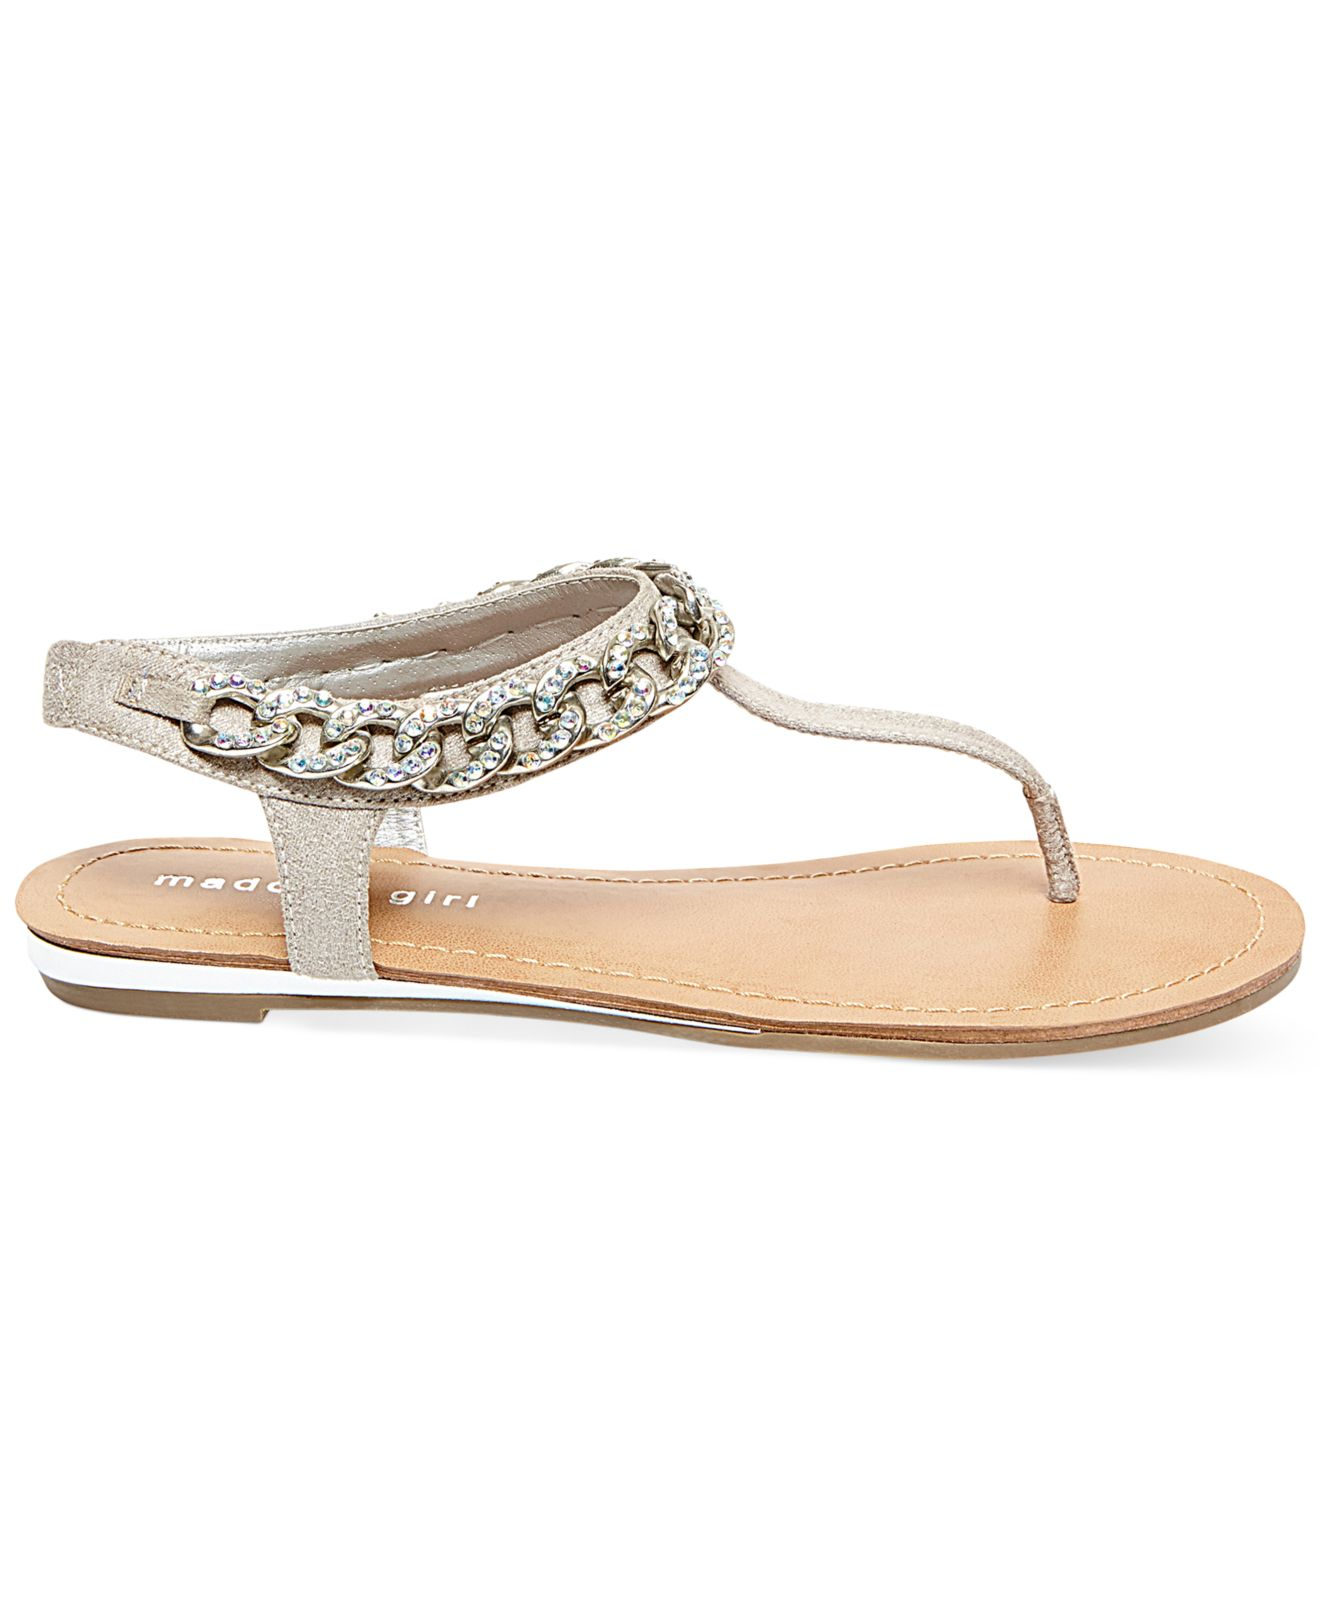 13f31a345 Lyst - Madden Girl Classic T-Strap Chain Flat Thong Sandals in Metallic